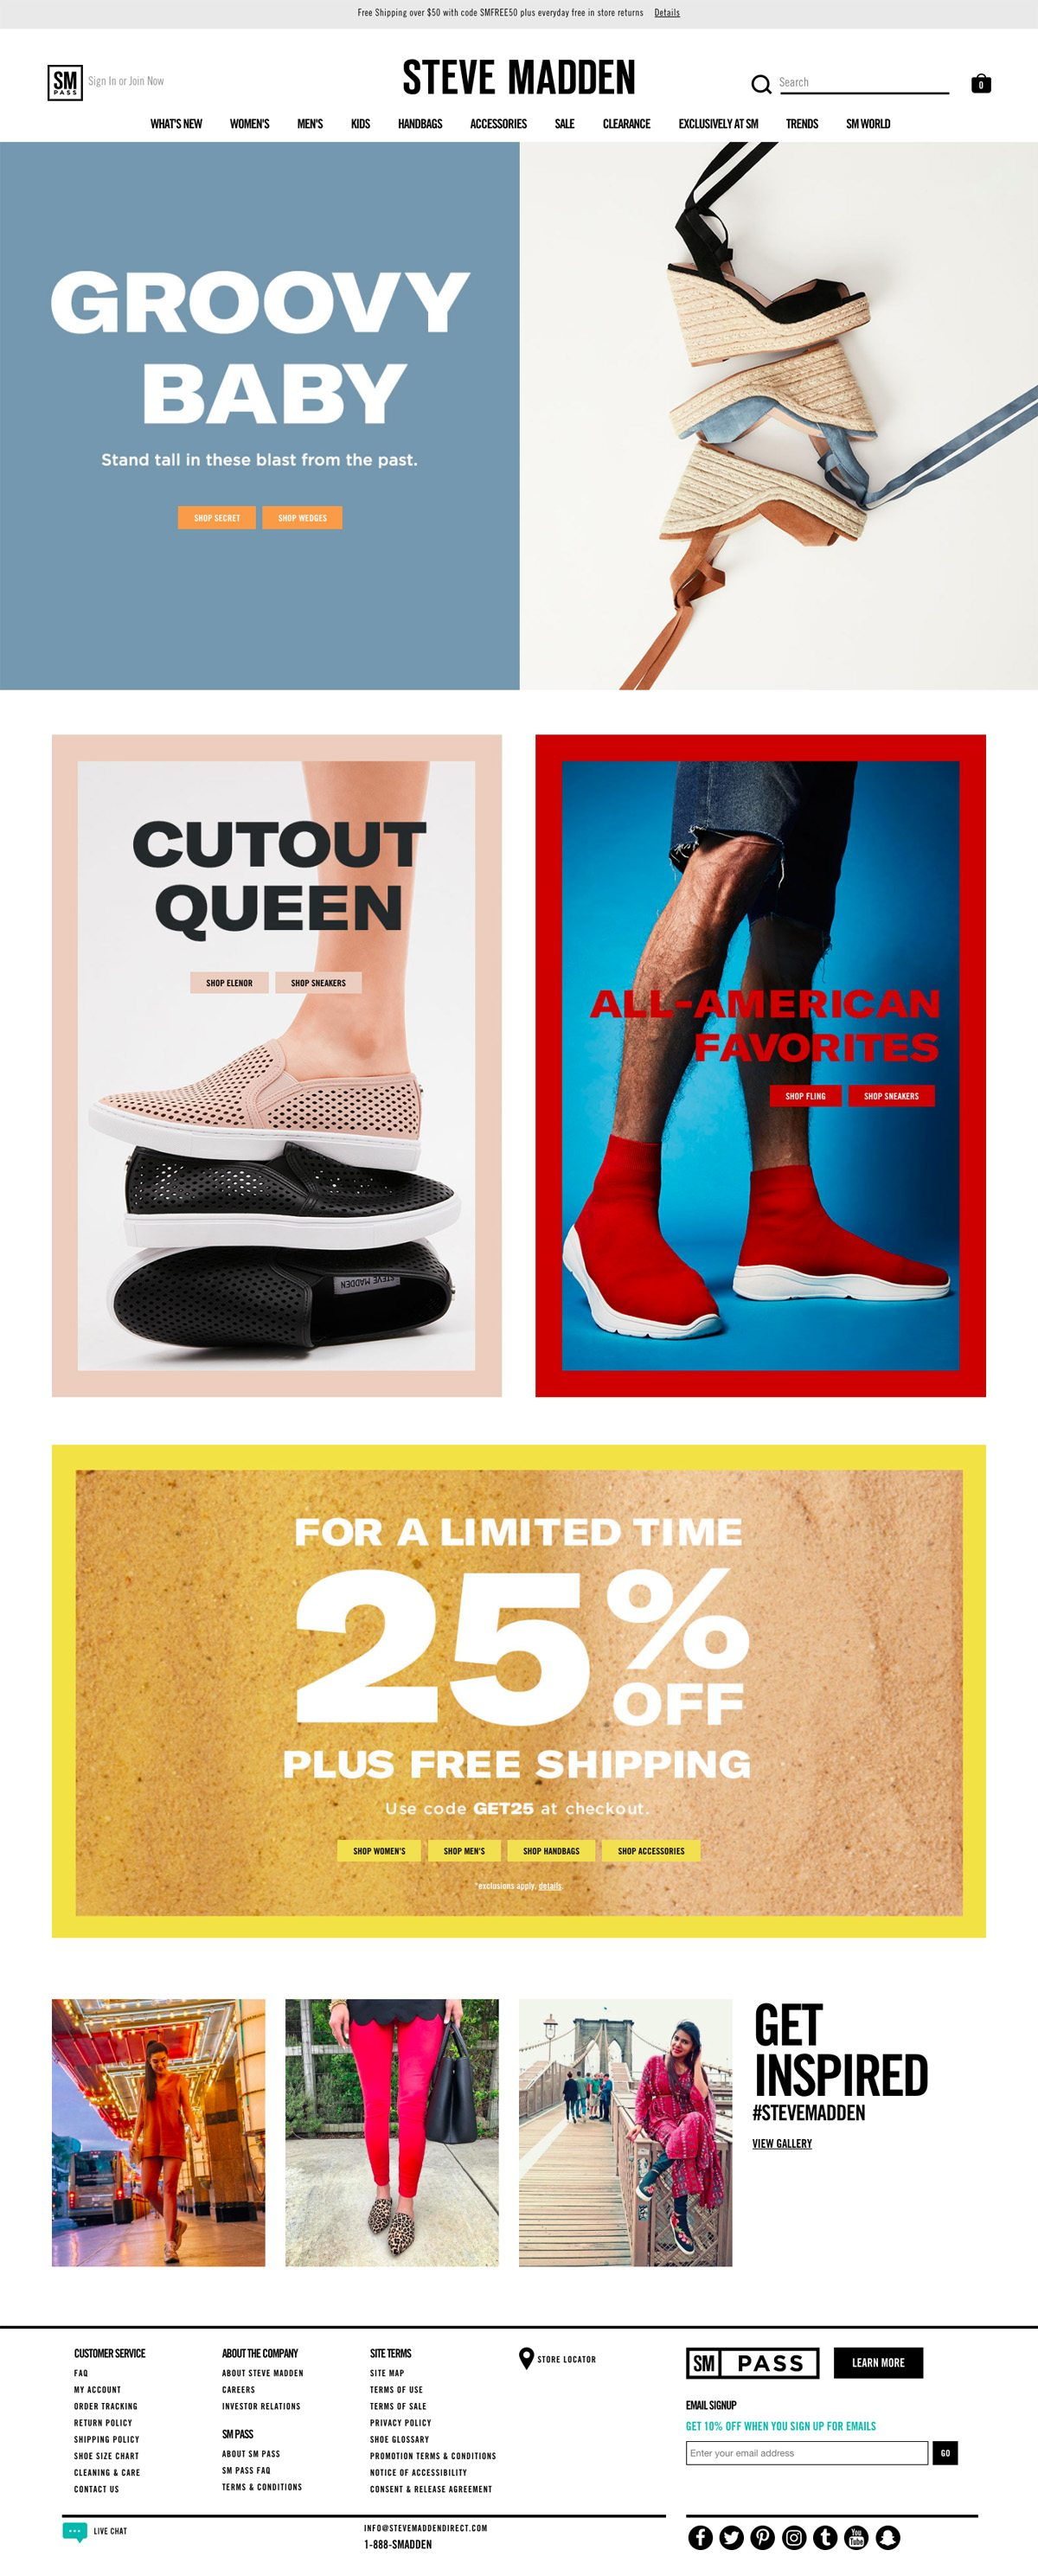 Post impresionismo Anciano Hasta aquí  Steve Madden | eCommerce Website Design Gallery & Tech Inspiration